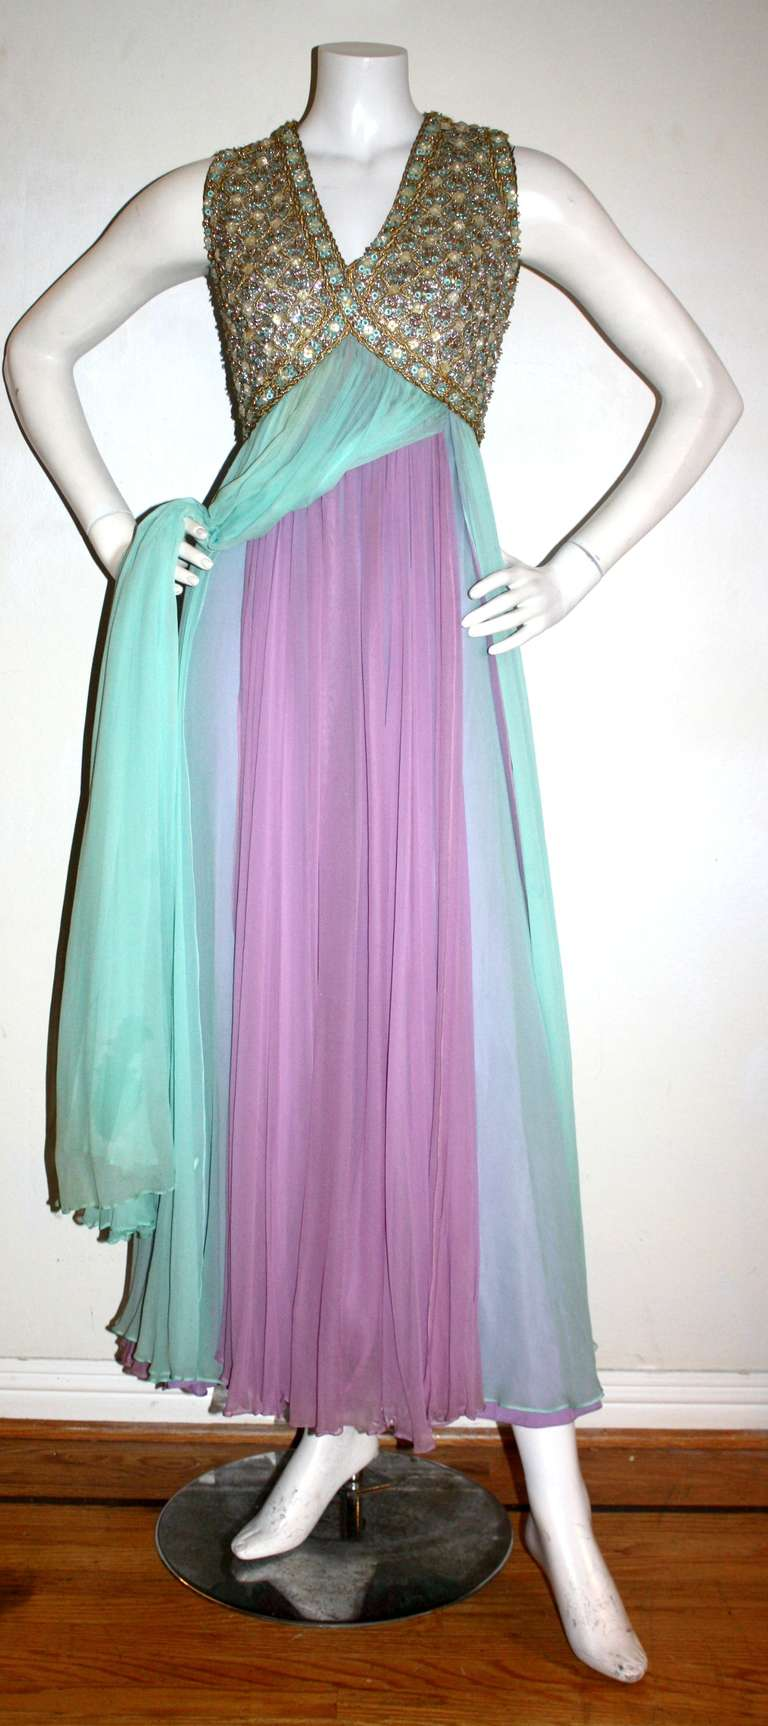 Stunning Vintage Greek Grecian Goddess Heavily Jeweled Chiffon Gown 3